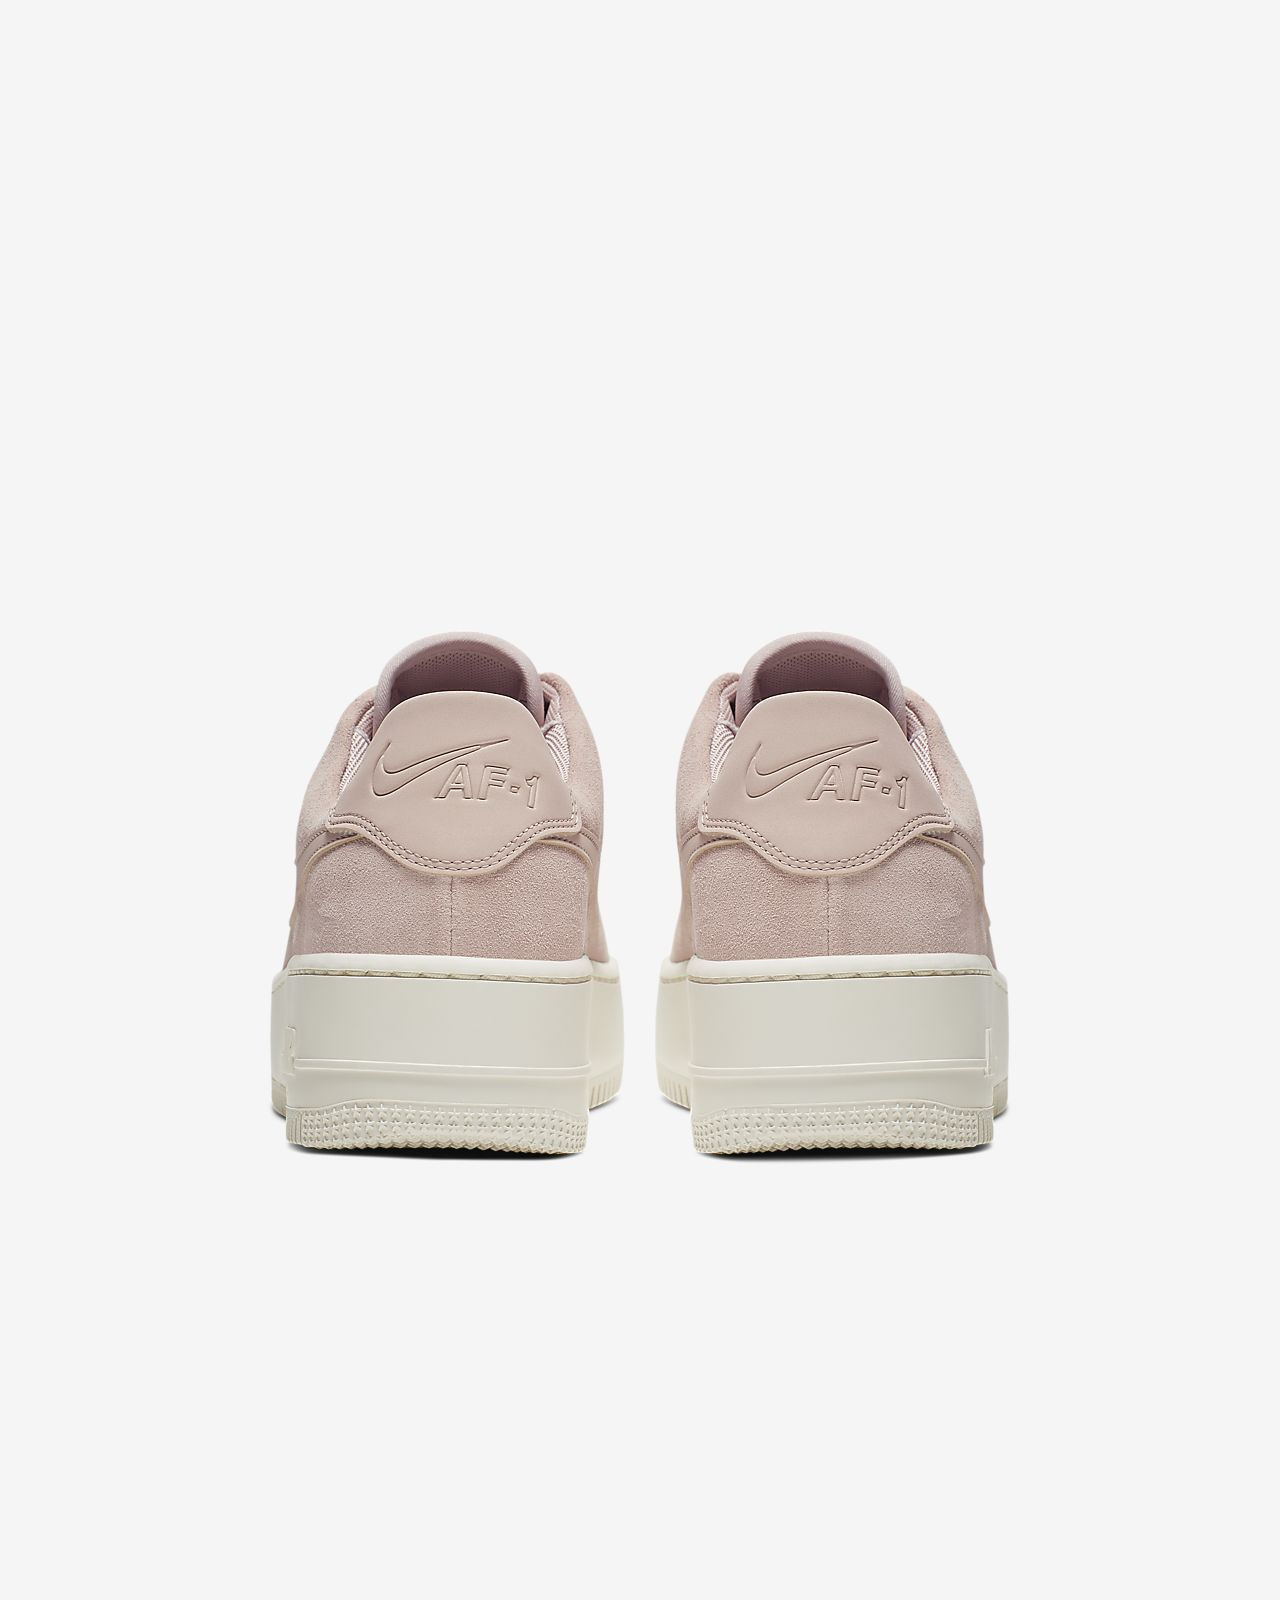 Buy Nike Air Force 1 Sage Low LX White Pink Purple In Women's Size